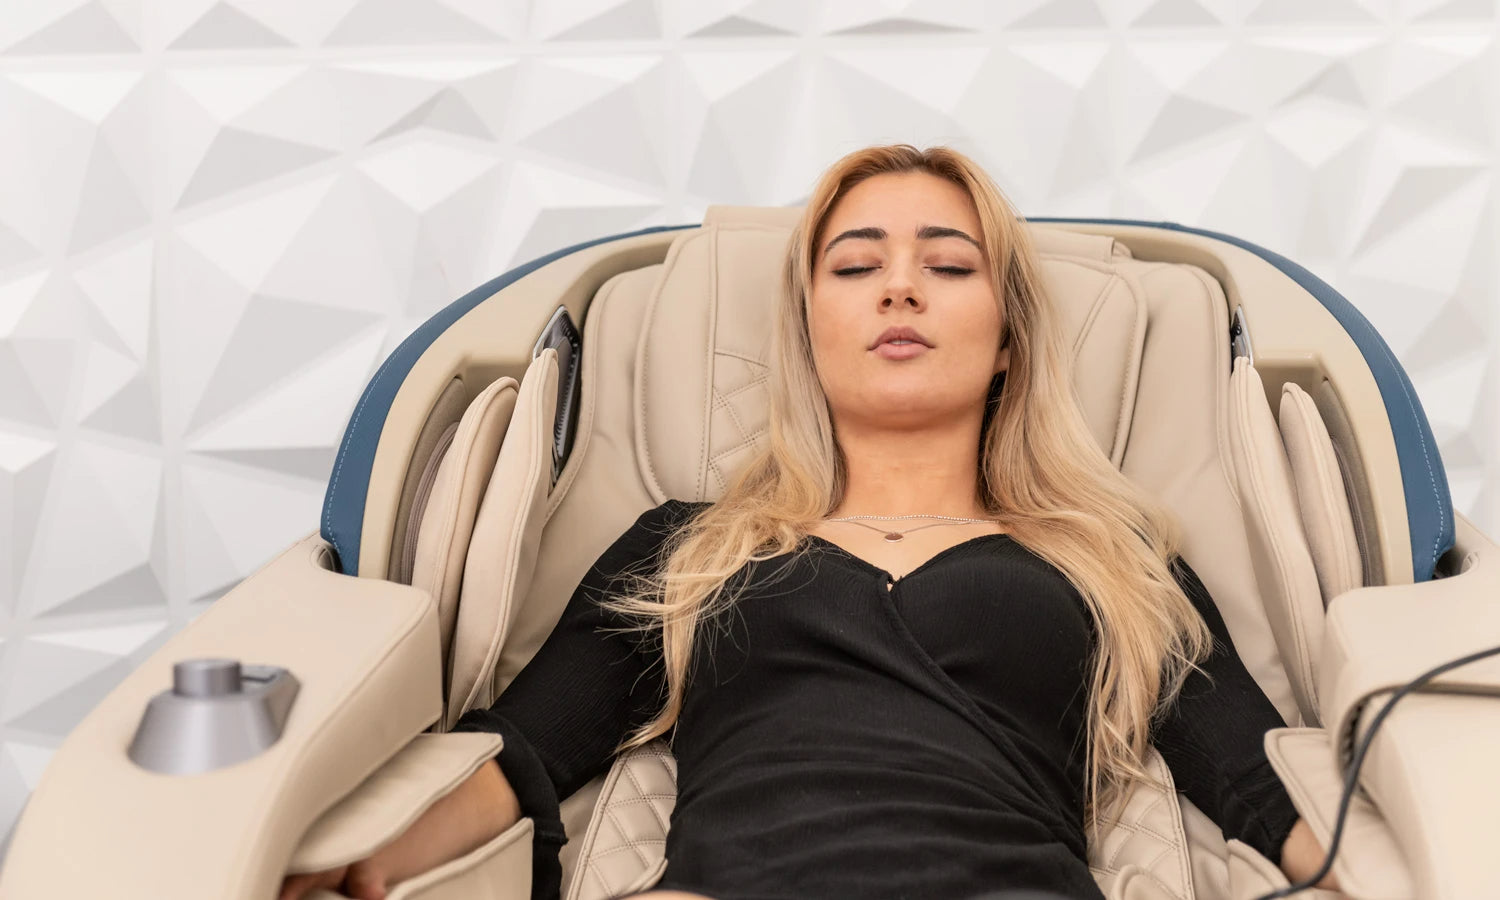 WHY DO YOU NEED A MASSAGE CHAIR?